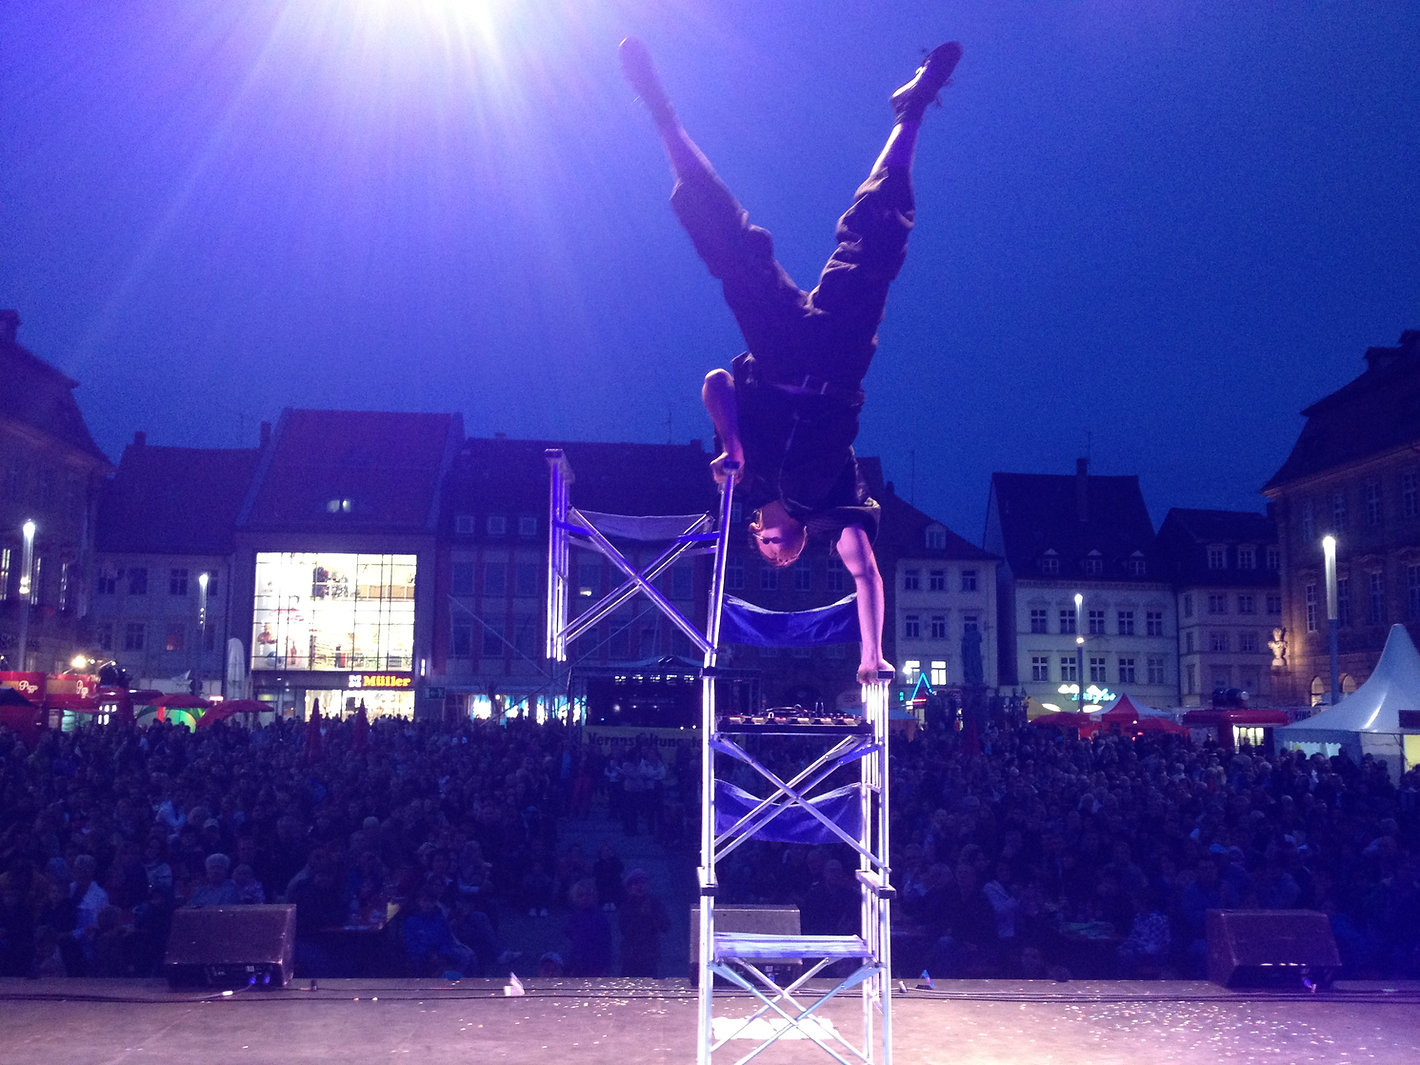 Ross Vegas performing his handstand ontop of three chairs at the Zaubert Festival in Bamberg, Germany